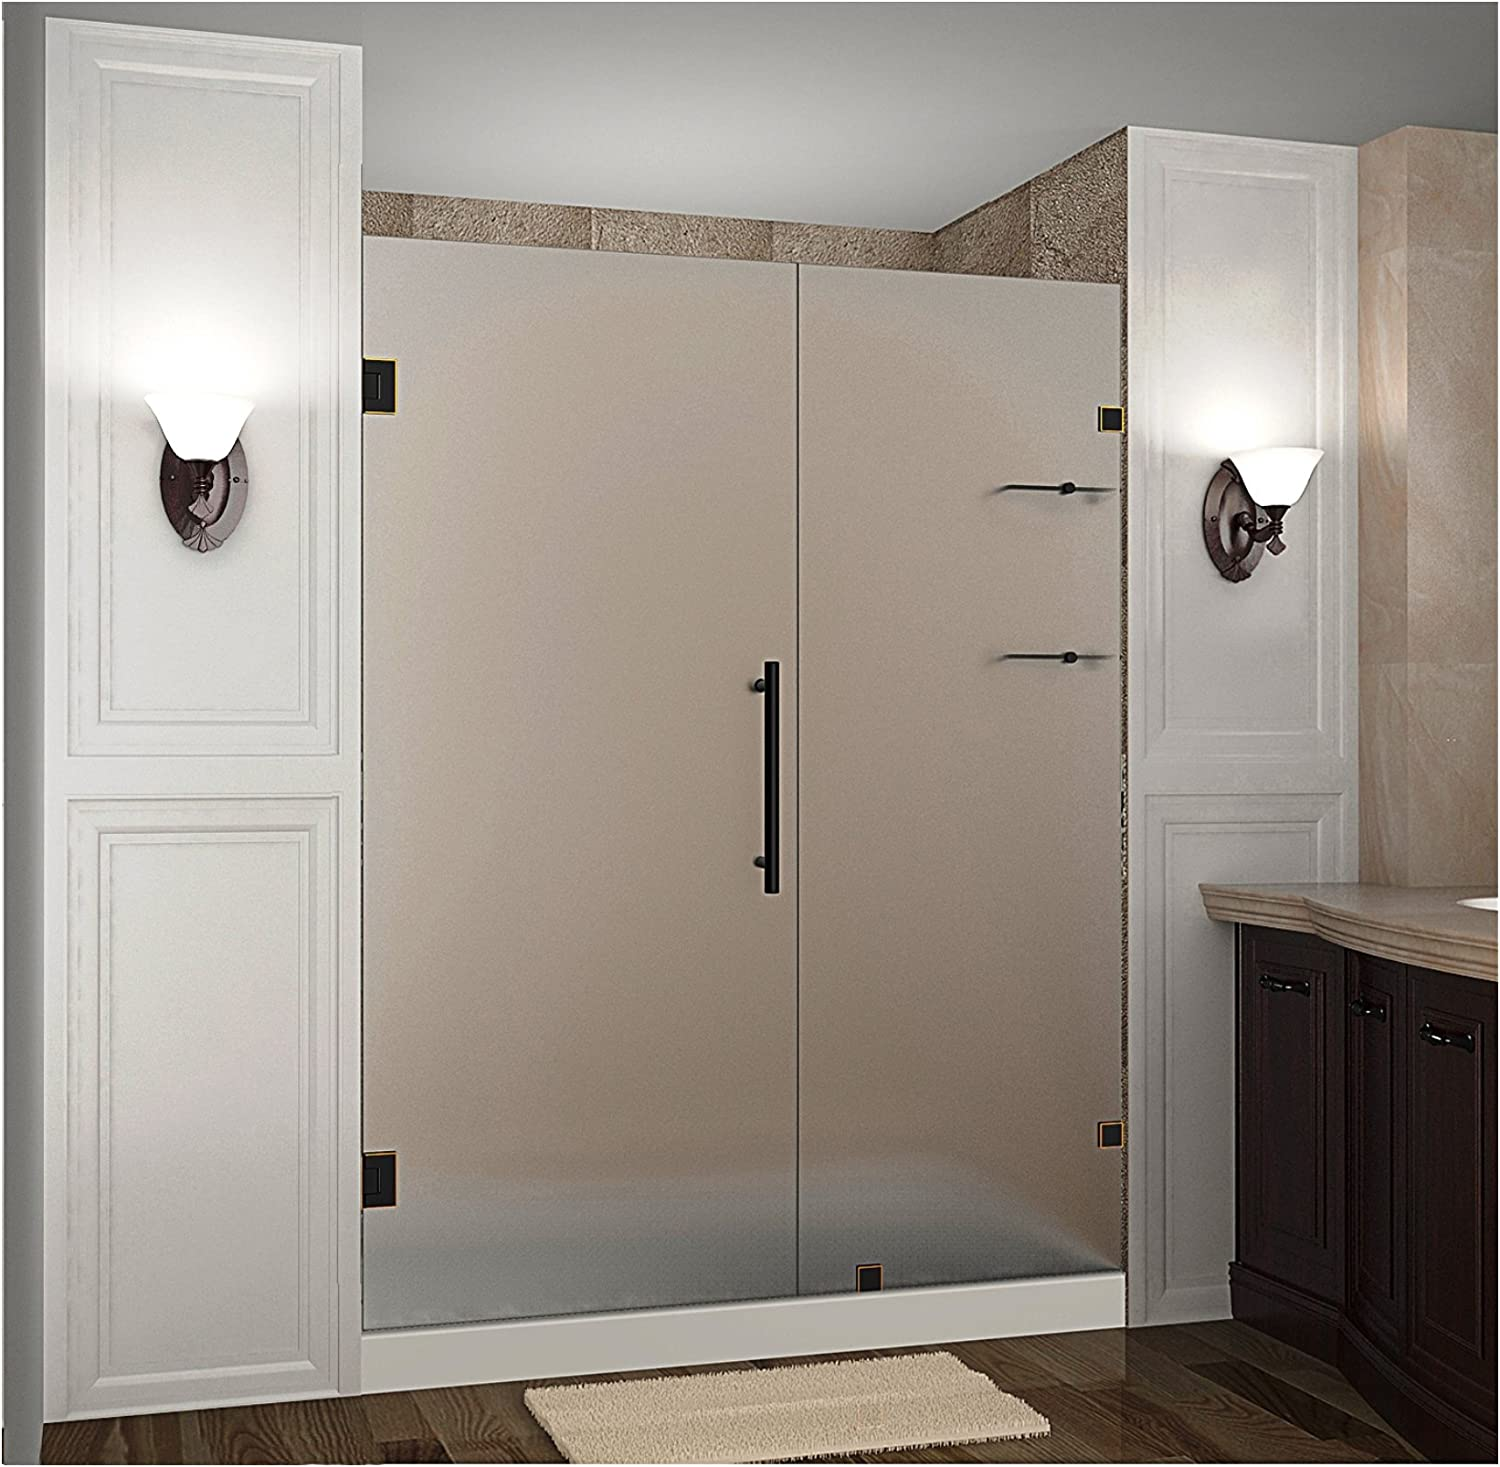 Aston Nautis Gs 46 X 72 Completely Frameless Hinged Shower Door In Frosted Glass With Shelves Polished Chrome